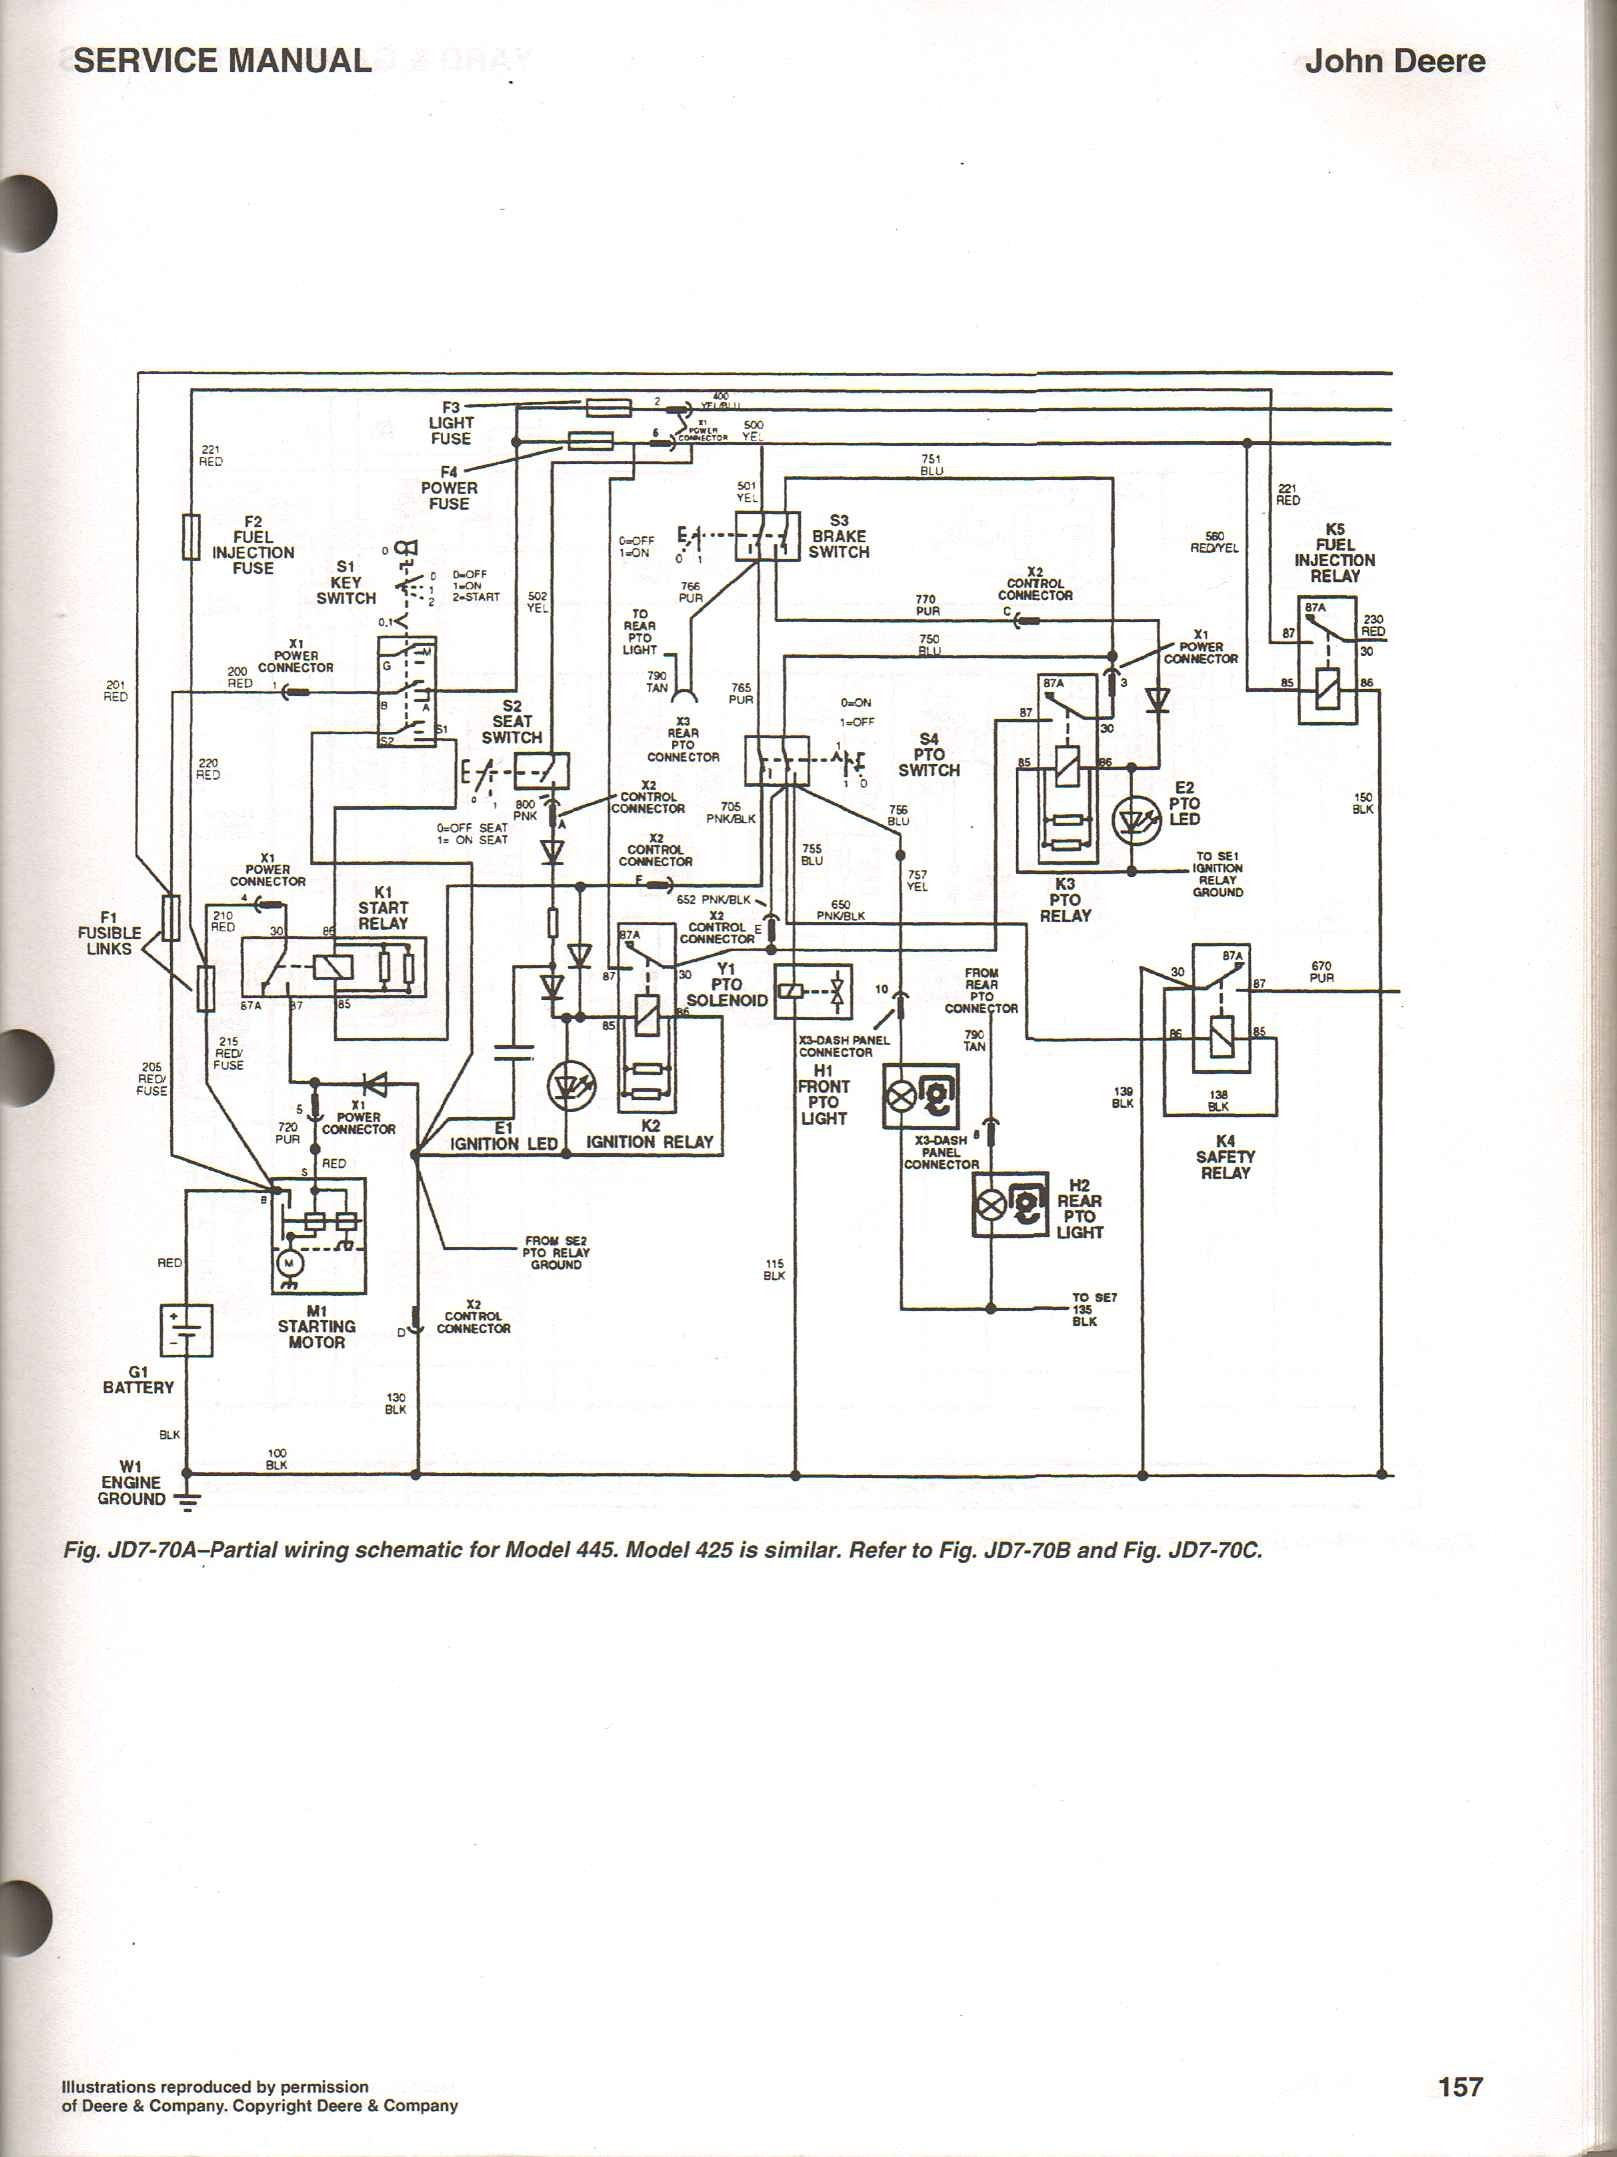 john deere l130 engine diagram ignition switch wiring for 316 readingrat net magnificent john deere of john deere l130 engine diagram 1 john deere 650 wiring diagram john deere 650 tractor wiring diagram